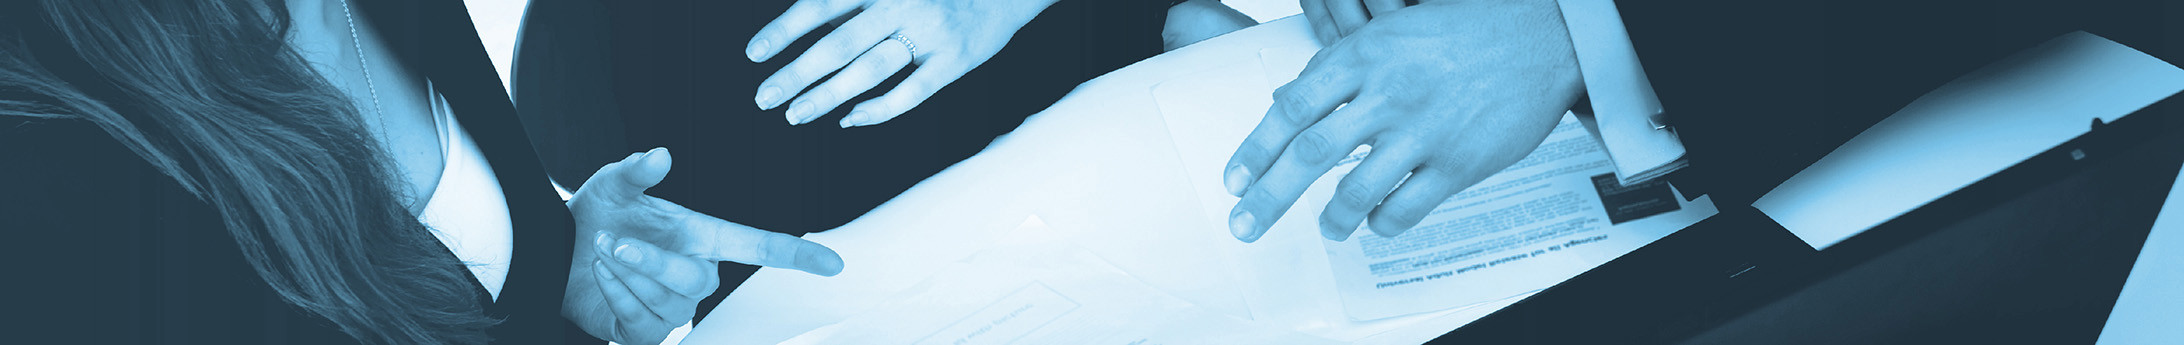 Audits To control company risks by rational methods, then the first and most important step...